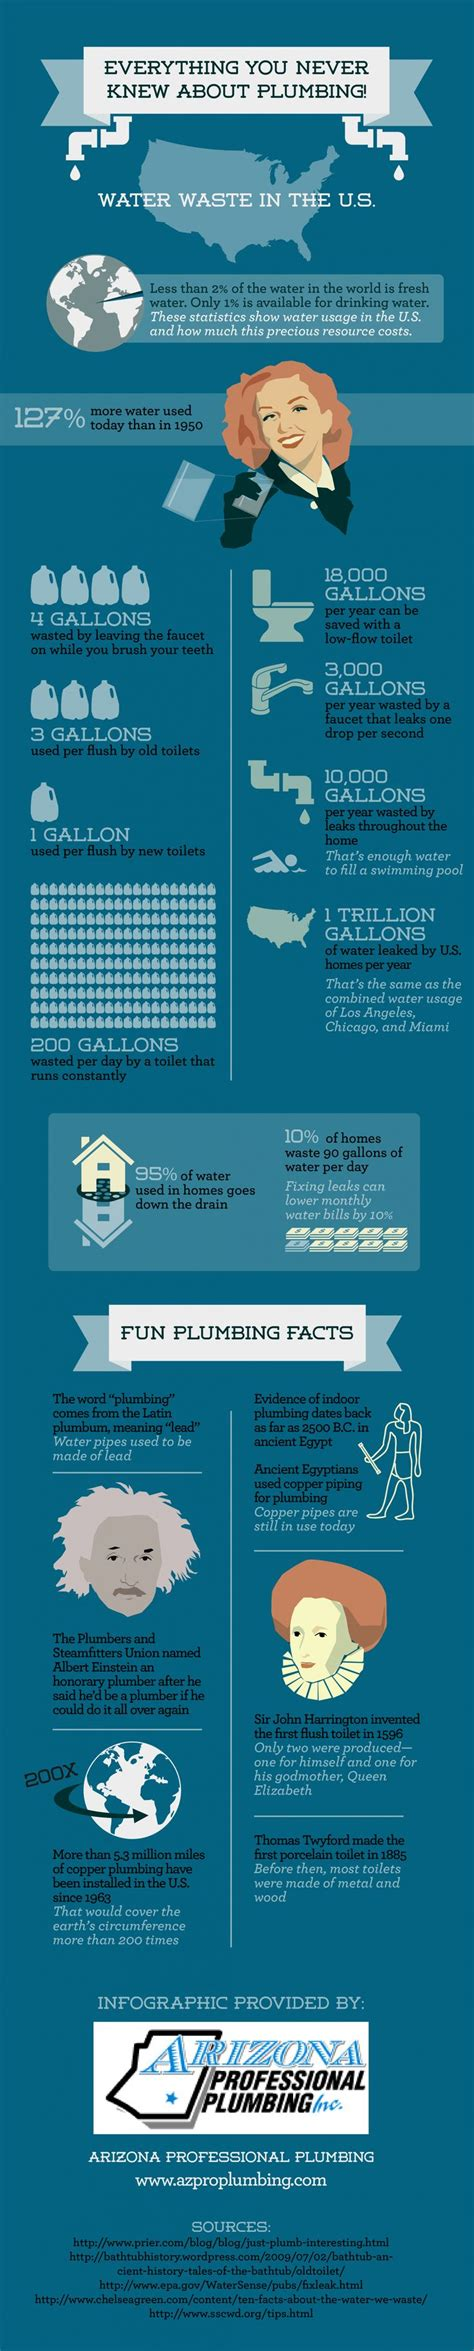 bathroom facts 1000 images about the history of plumbing on pinterest